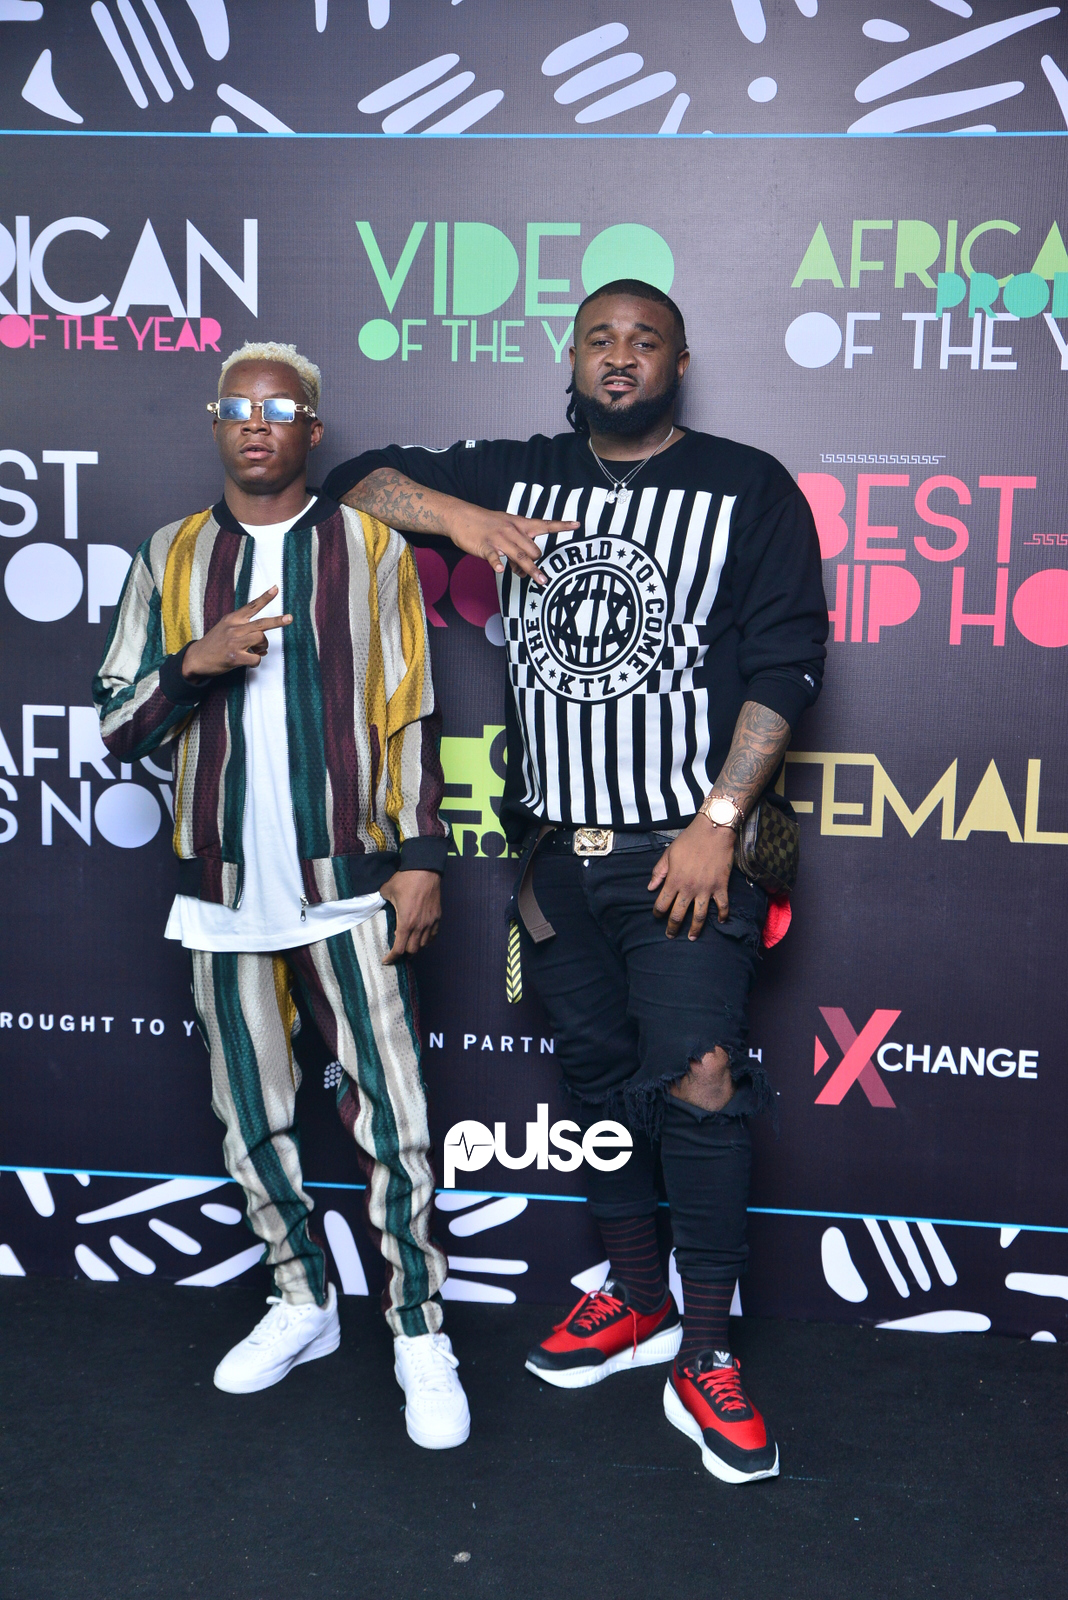 Terri and Ceeza Milli both won best collaboration with Wizkid for the song 'Soco'